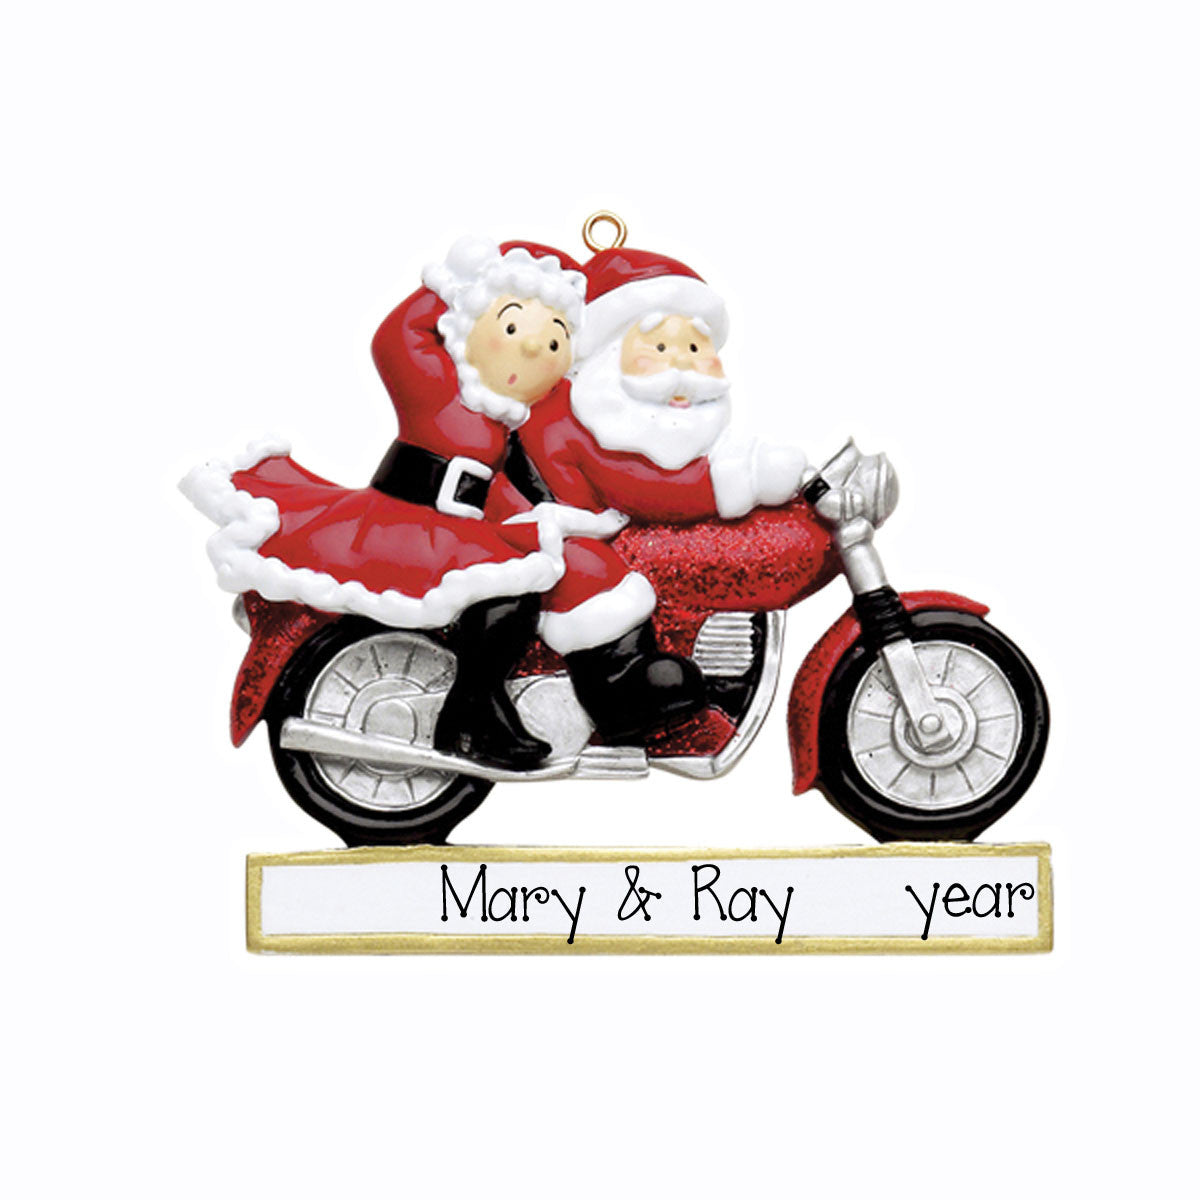 Mr. & Mrs. Claus Motorcycle Ornament, My Personalized Ornaments